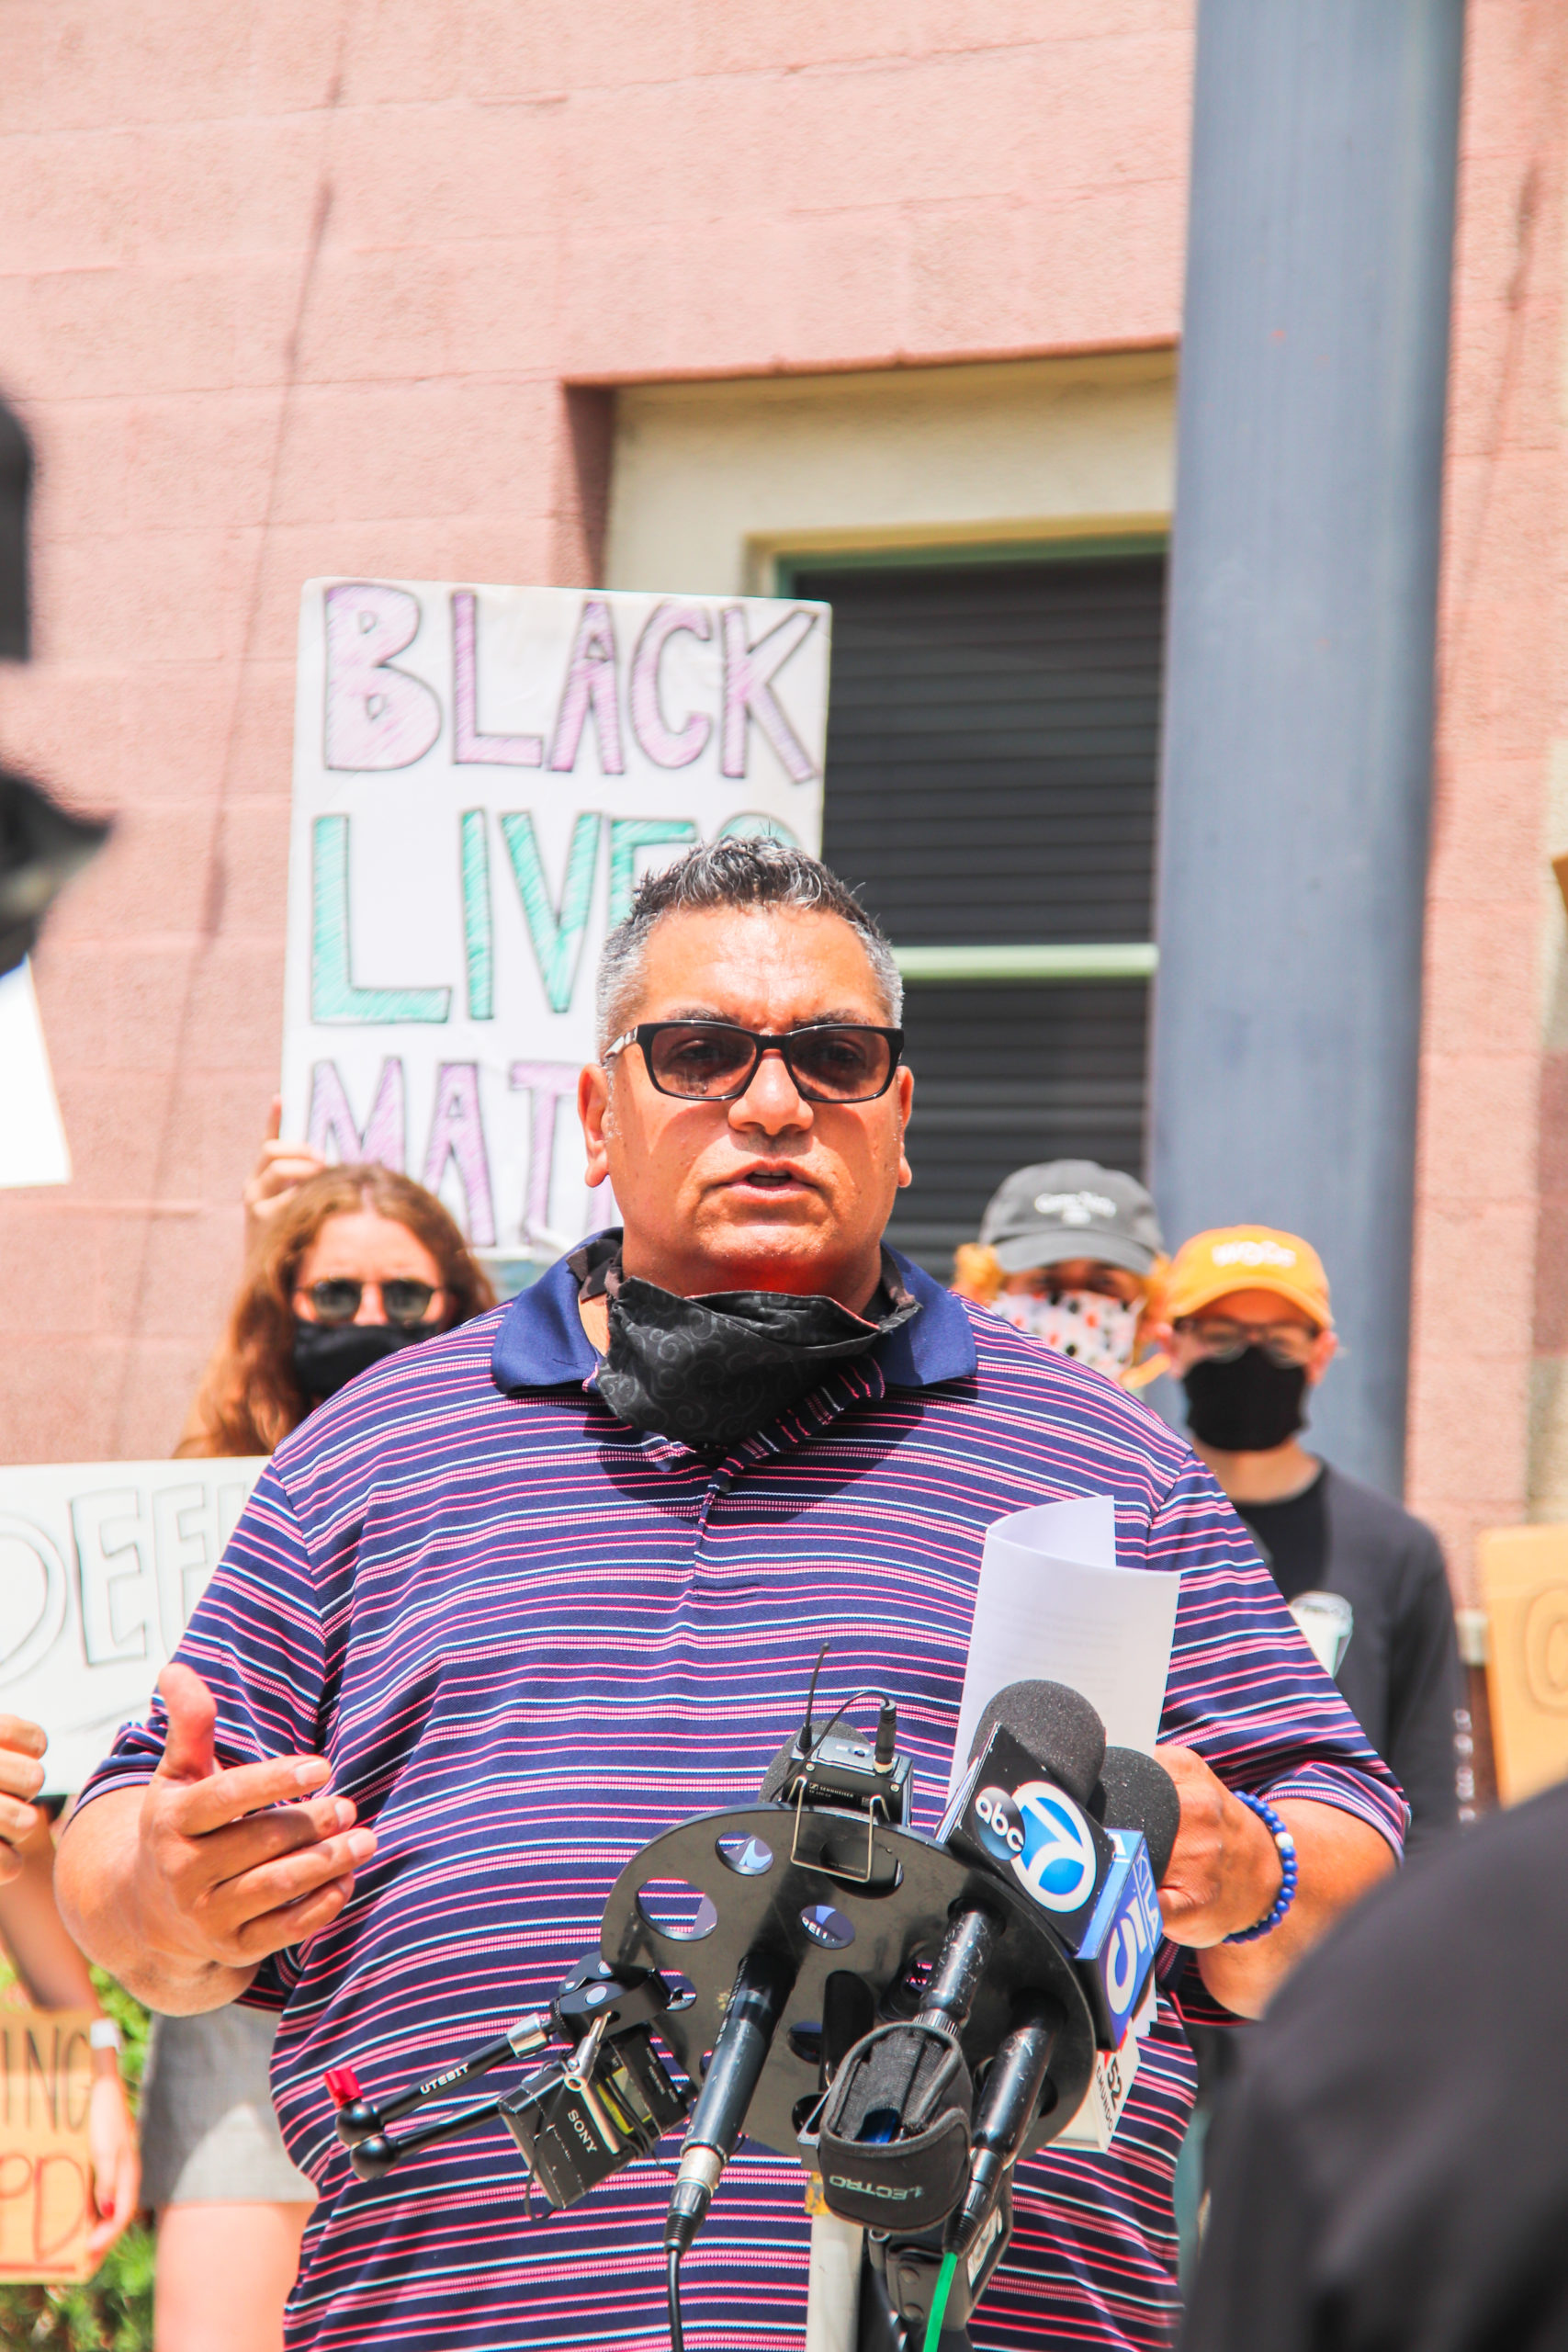 south-pasadena-news-06-24-2020-vanessa-marquez-police-shooting-wrongful-death-lawsuit-city-hall-27